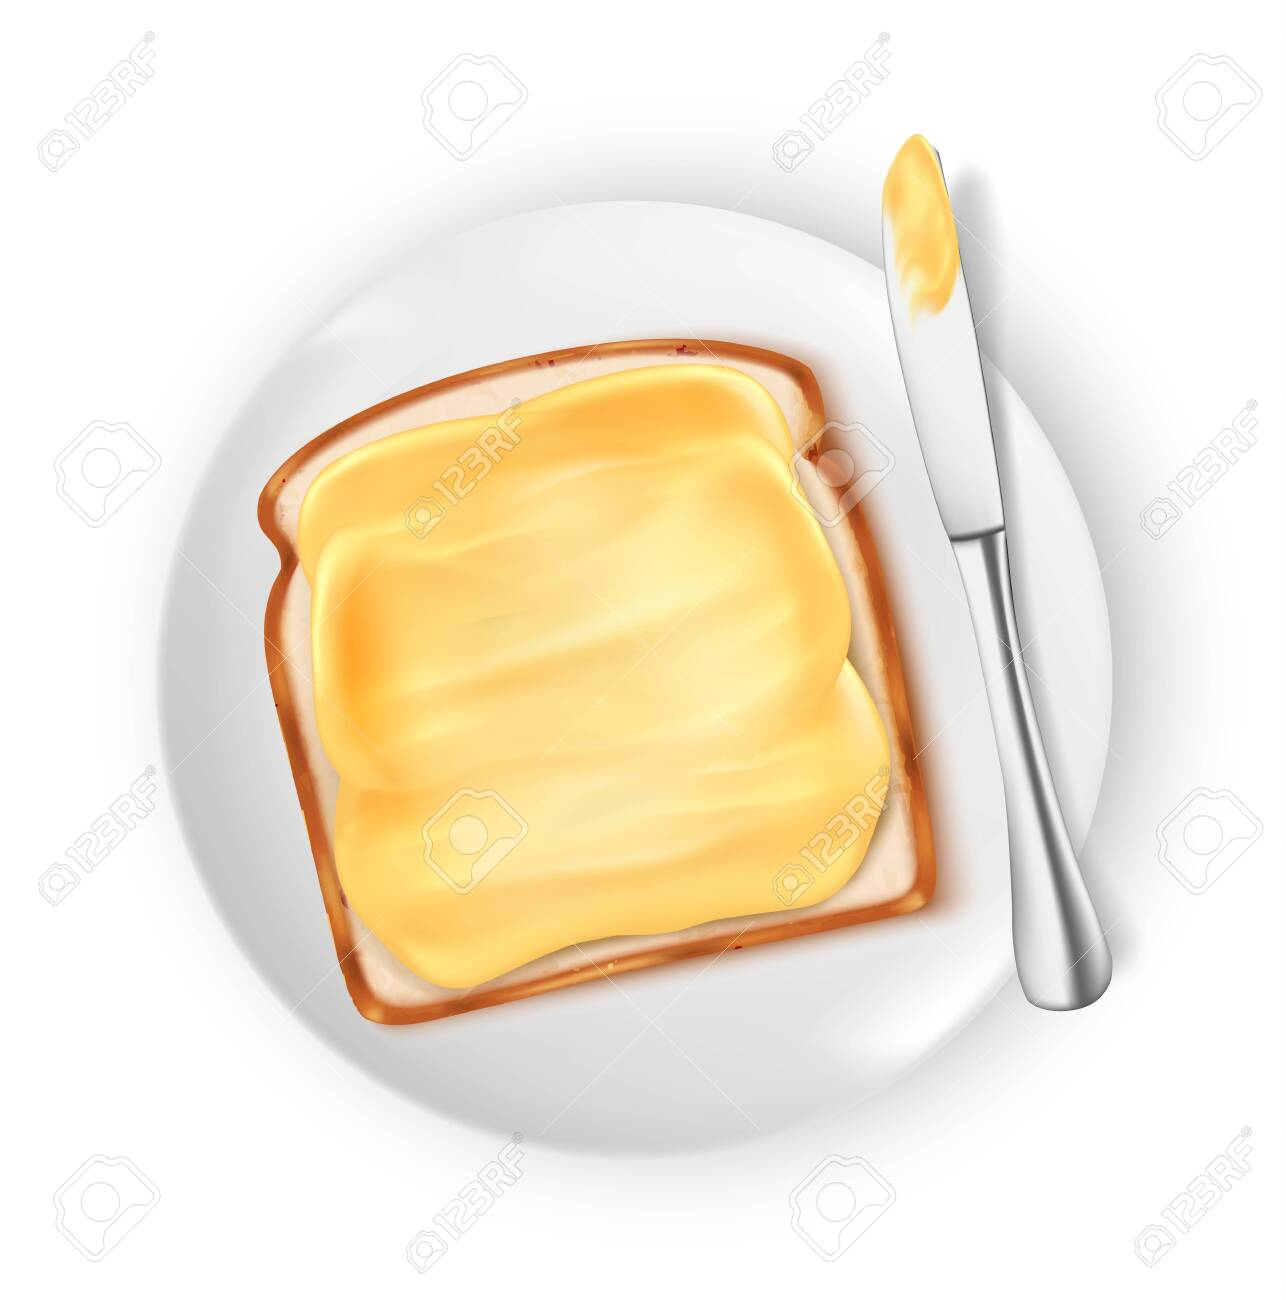 bread with butter isolated on white background, vector illustration - 133225115